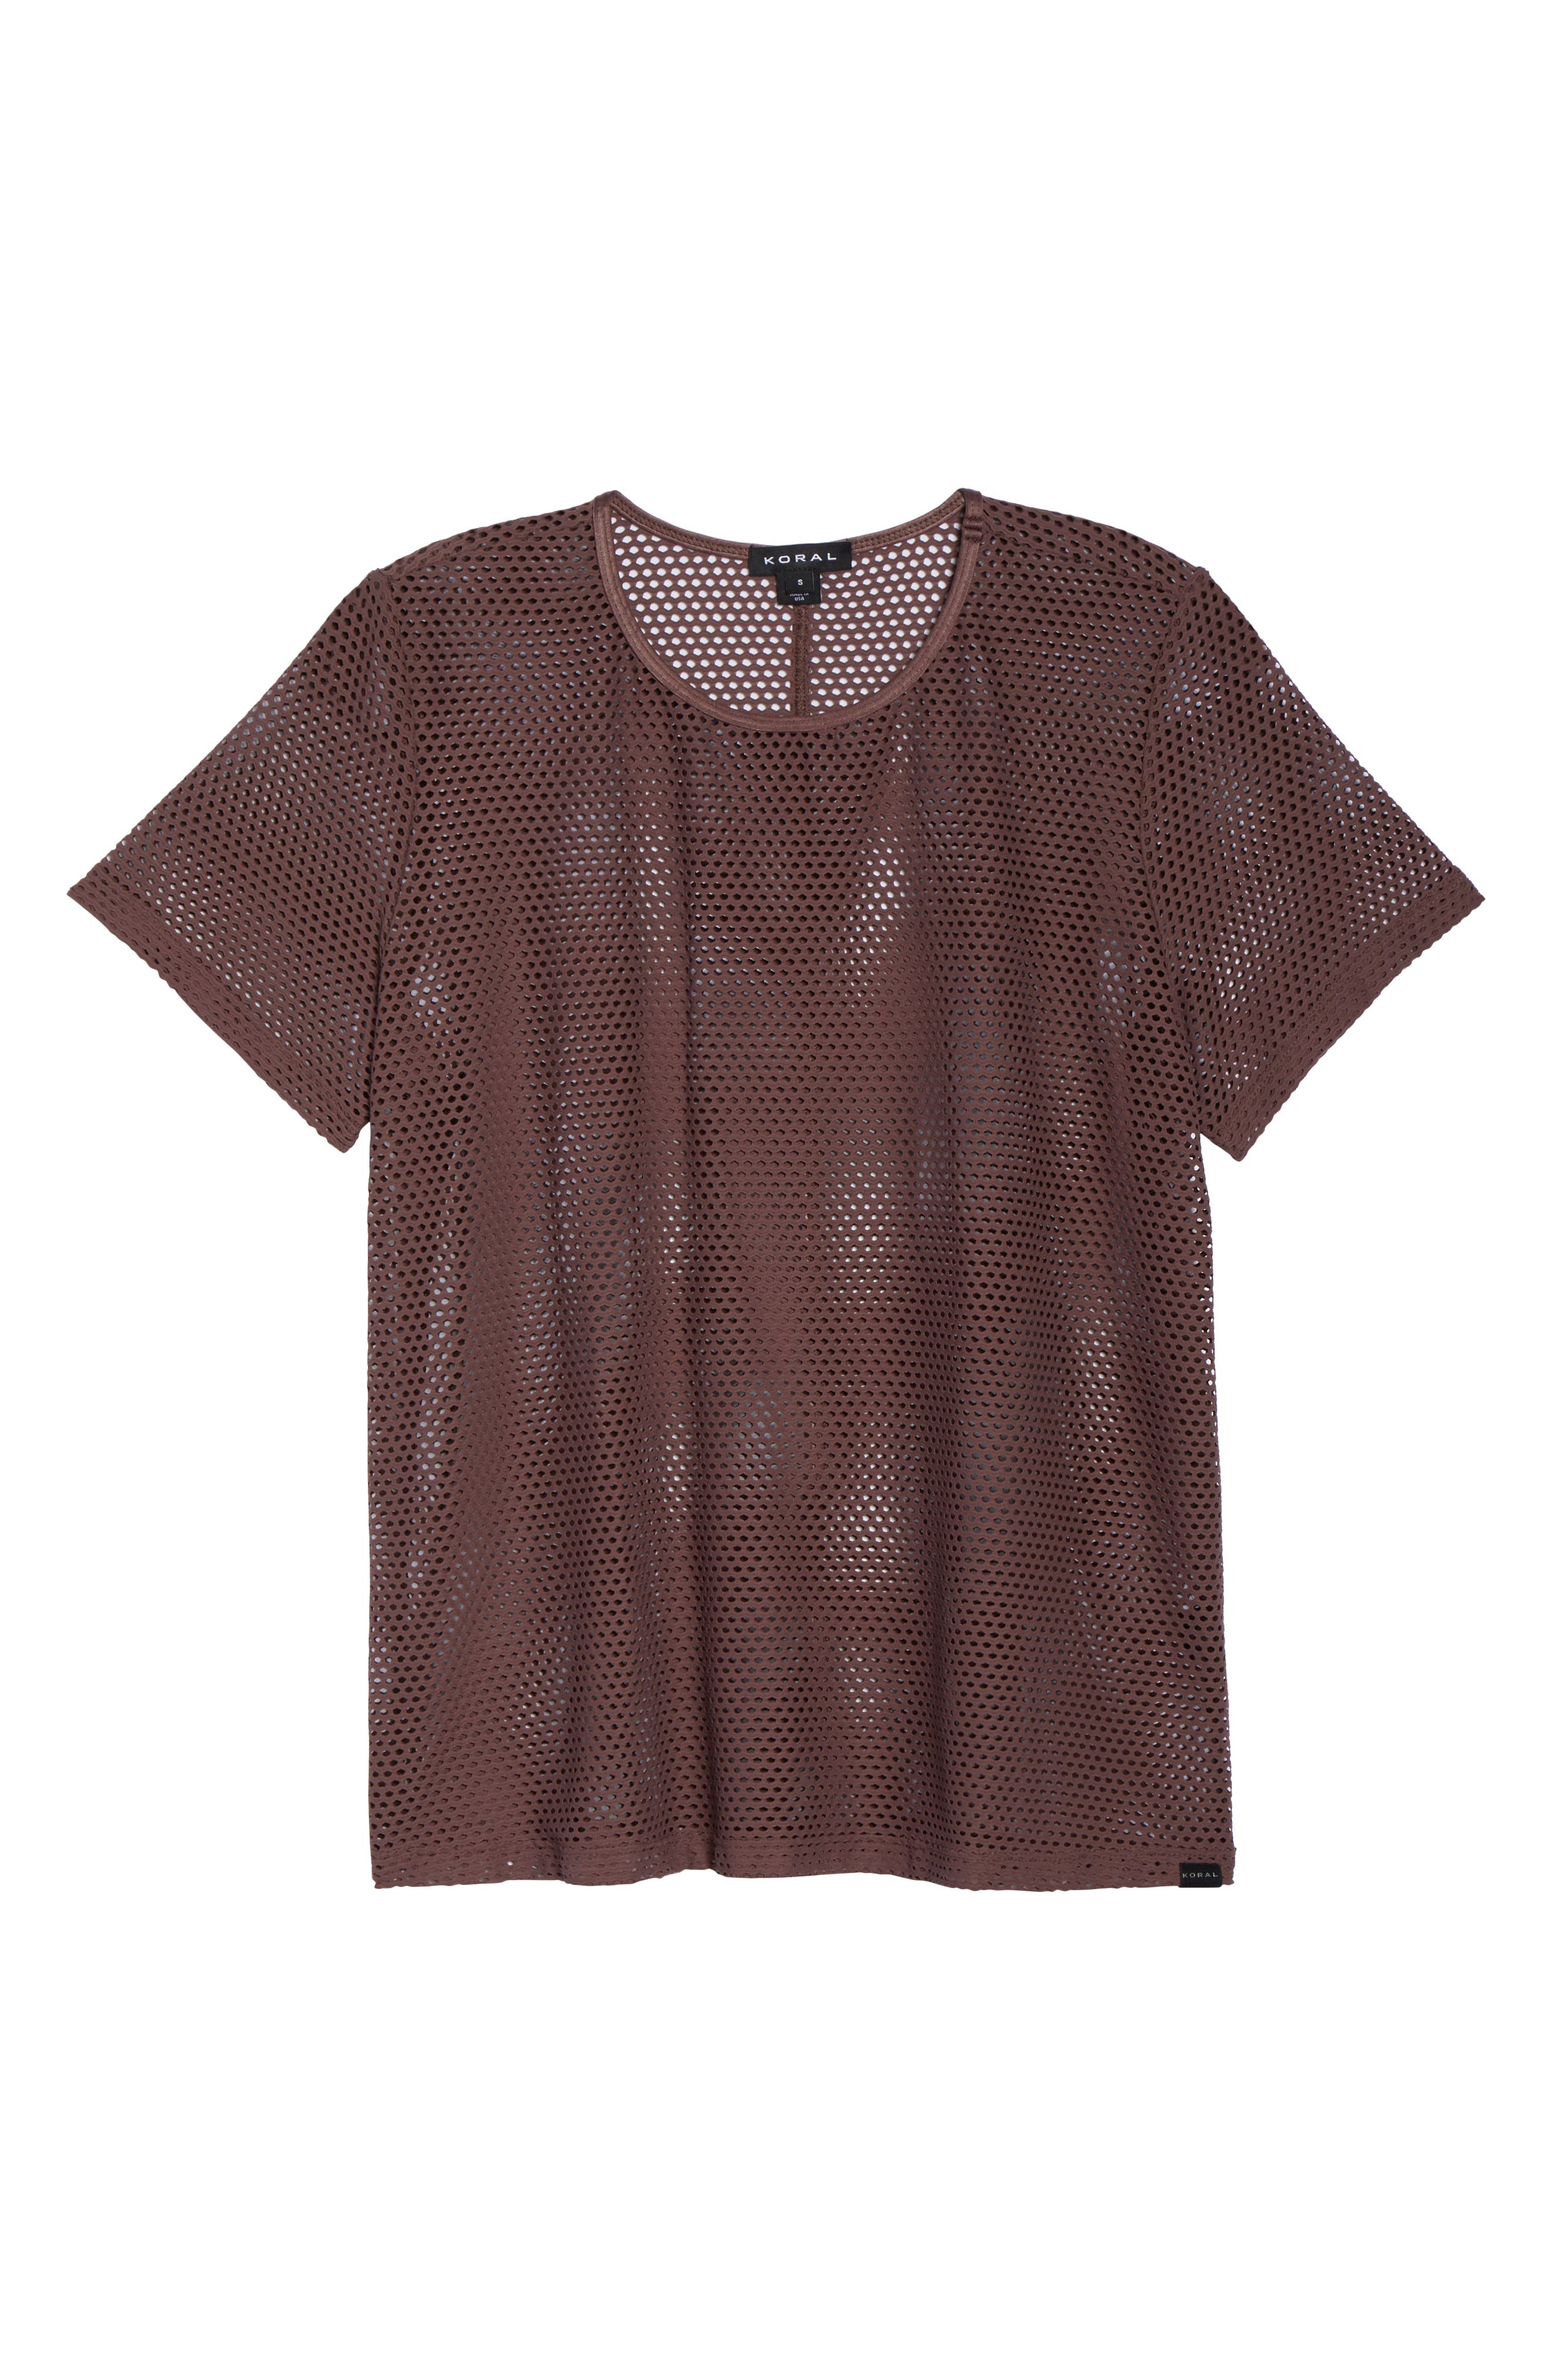 Size Up Mesh Tee,                             Alternate thumbnail 7, color,                             530